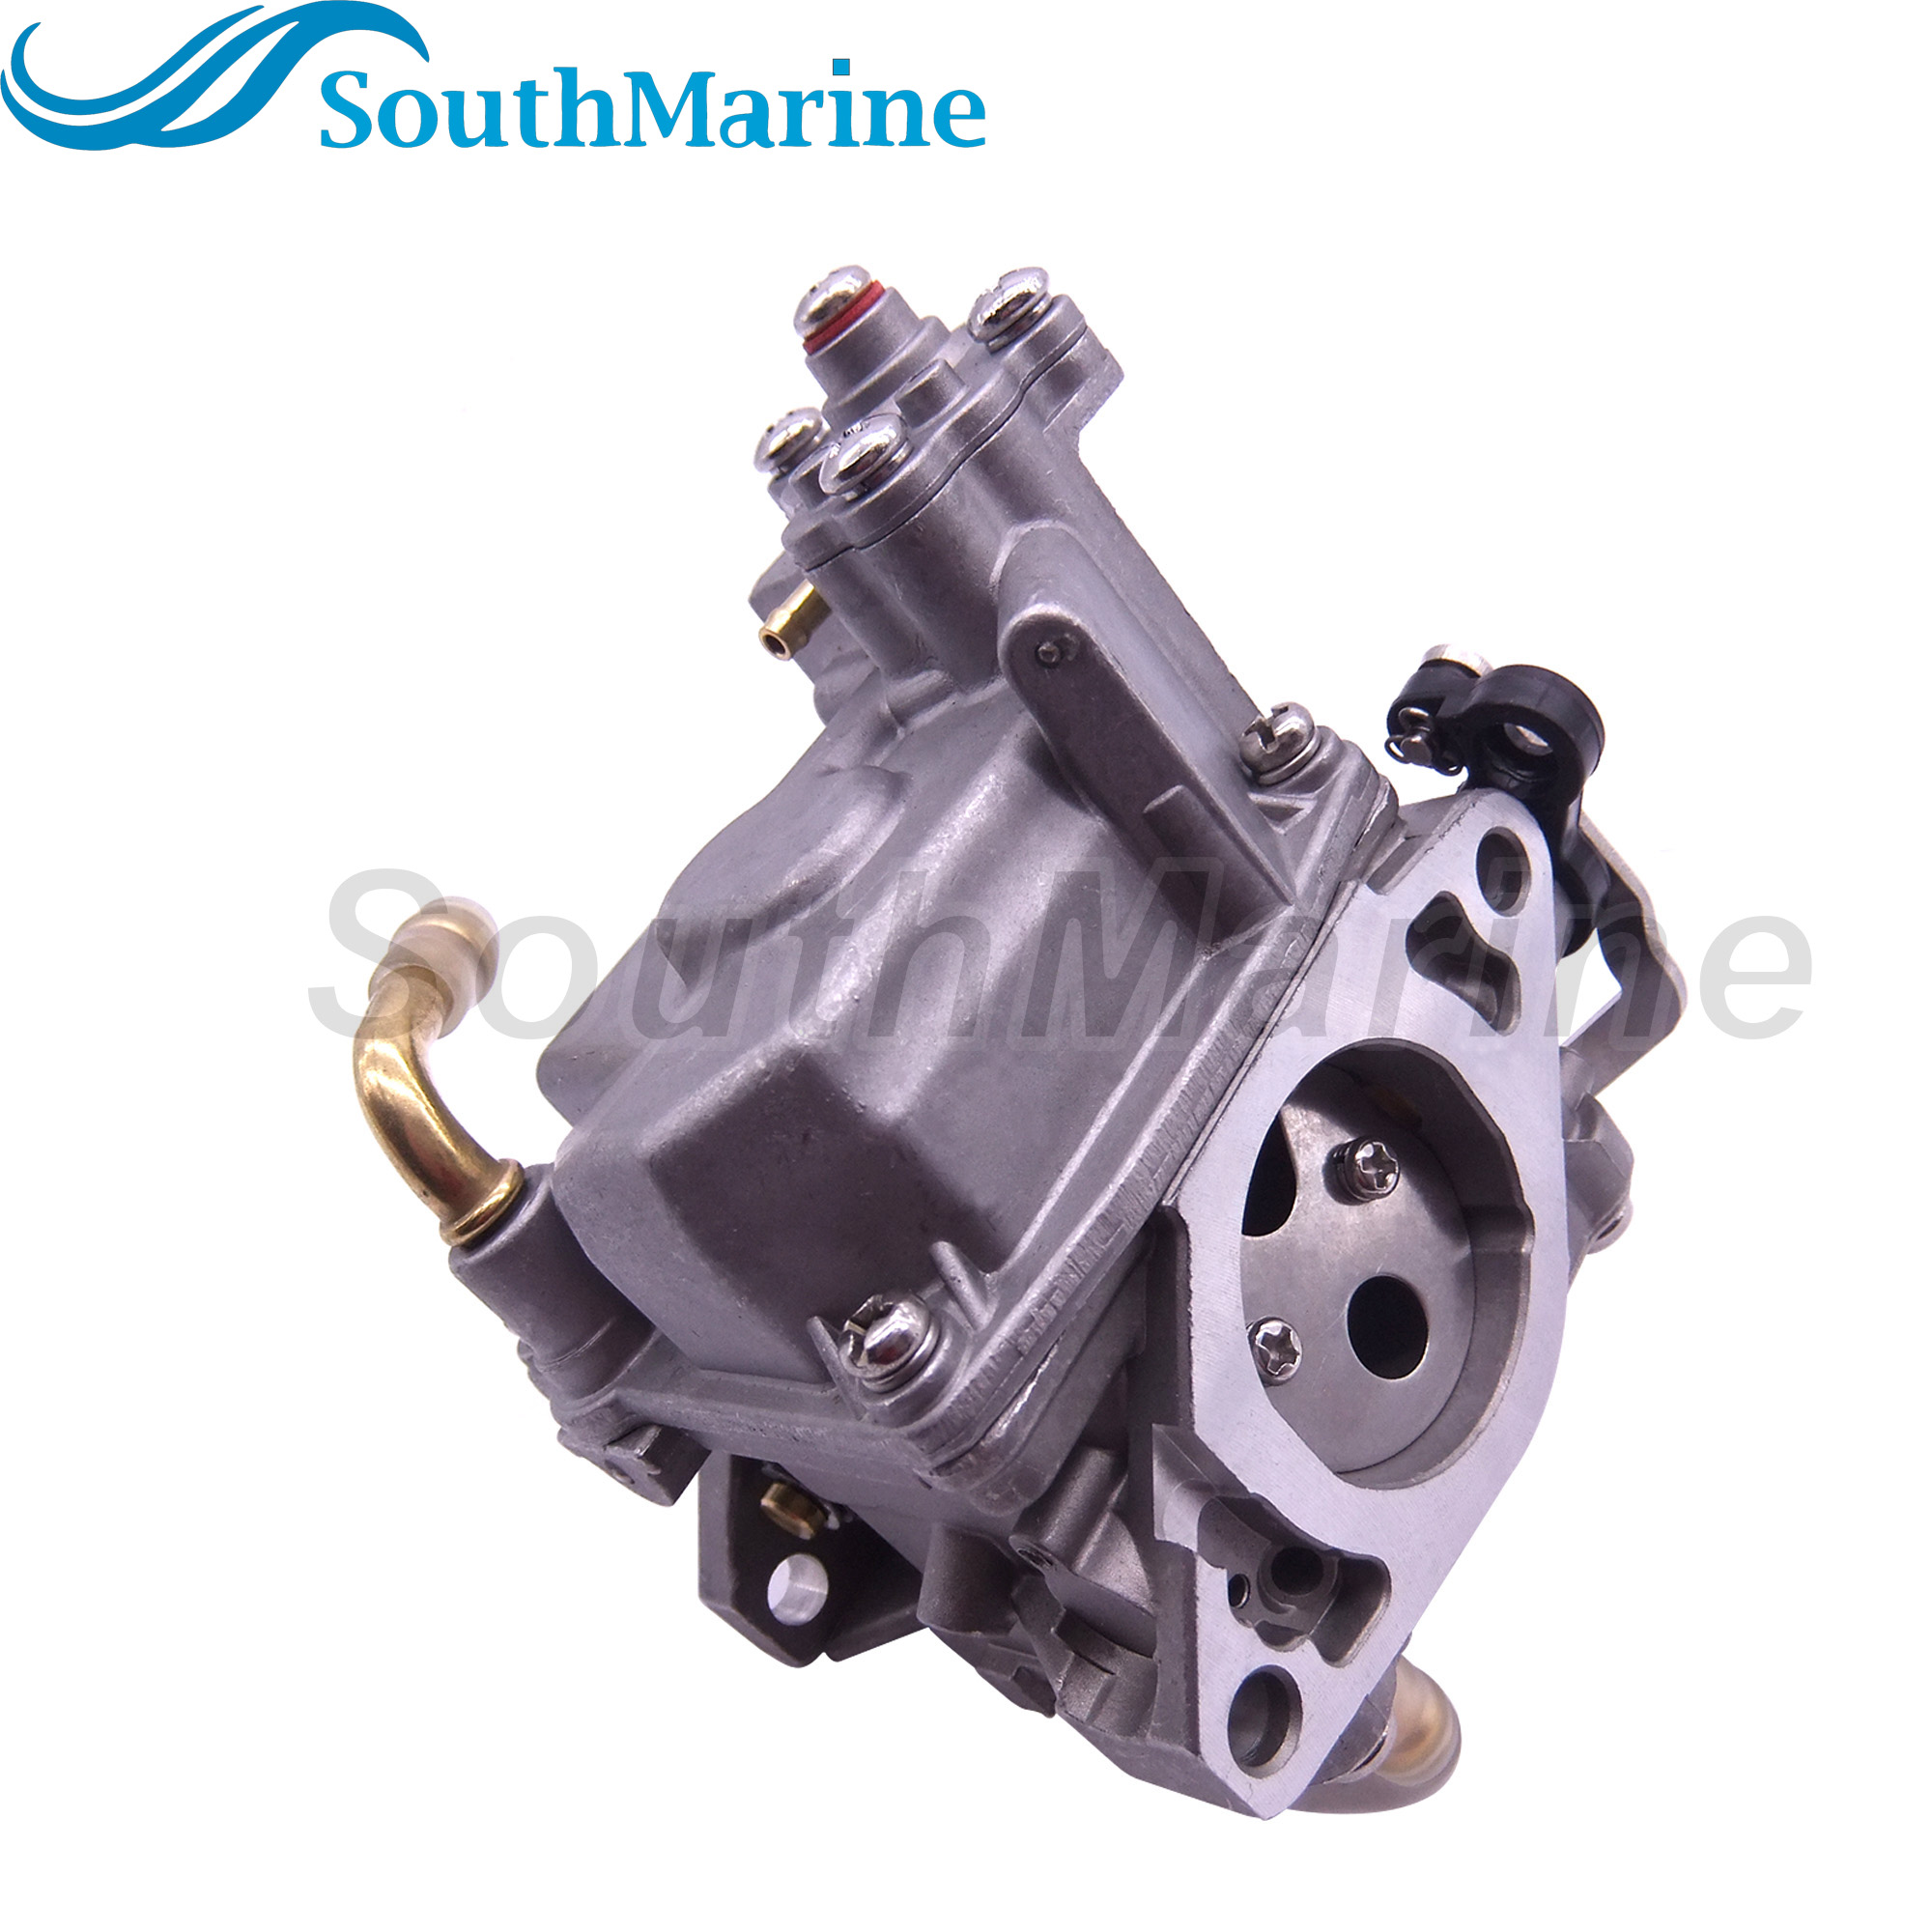 5040597 Carburetor Assembly For Evinrude Johnson OMC Outboard Engine 15HP 4-stroke